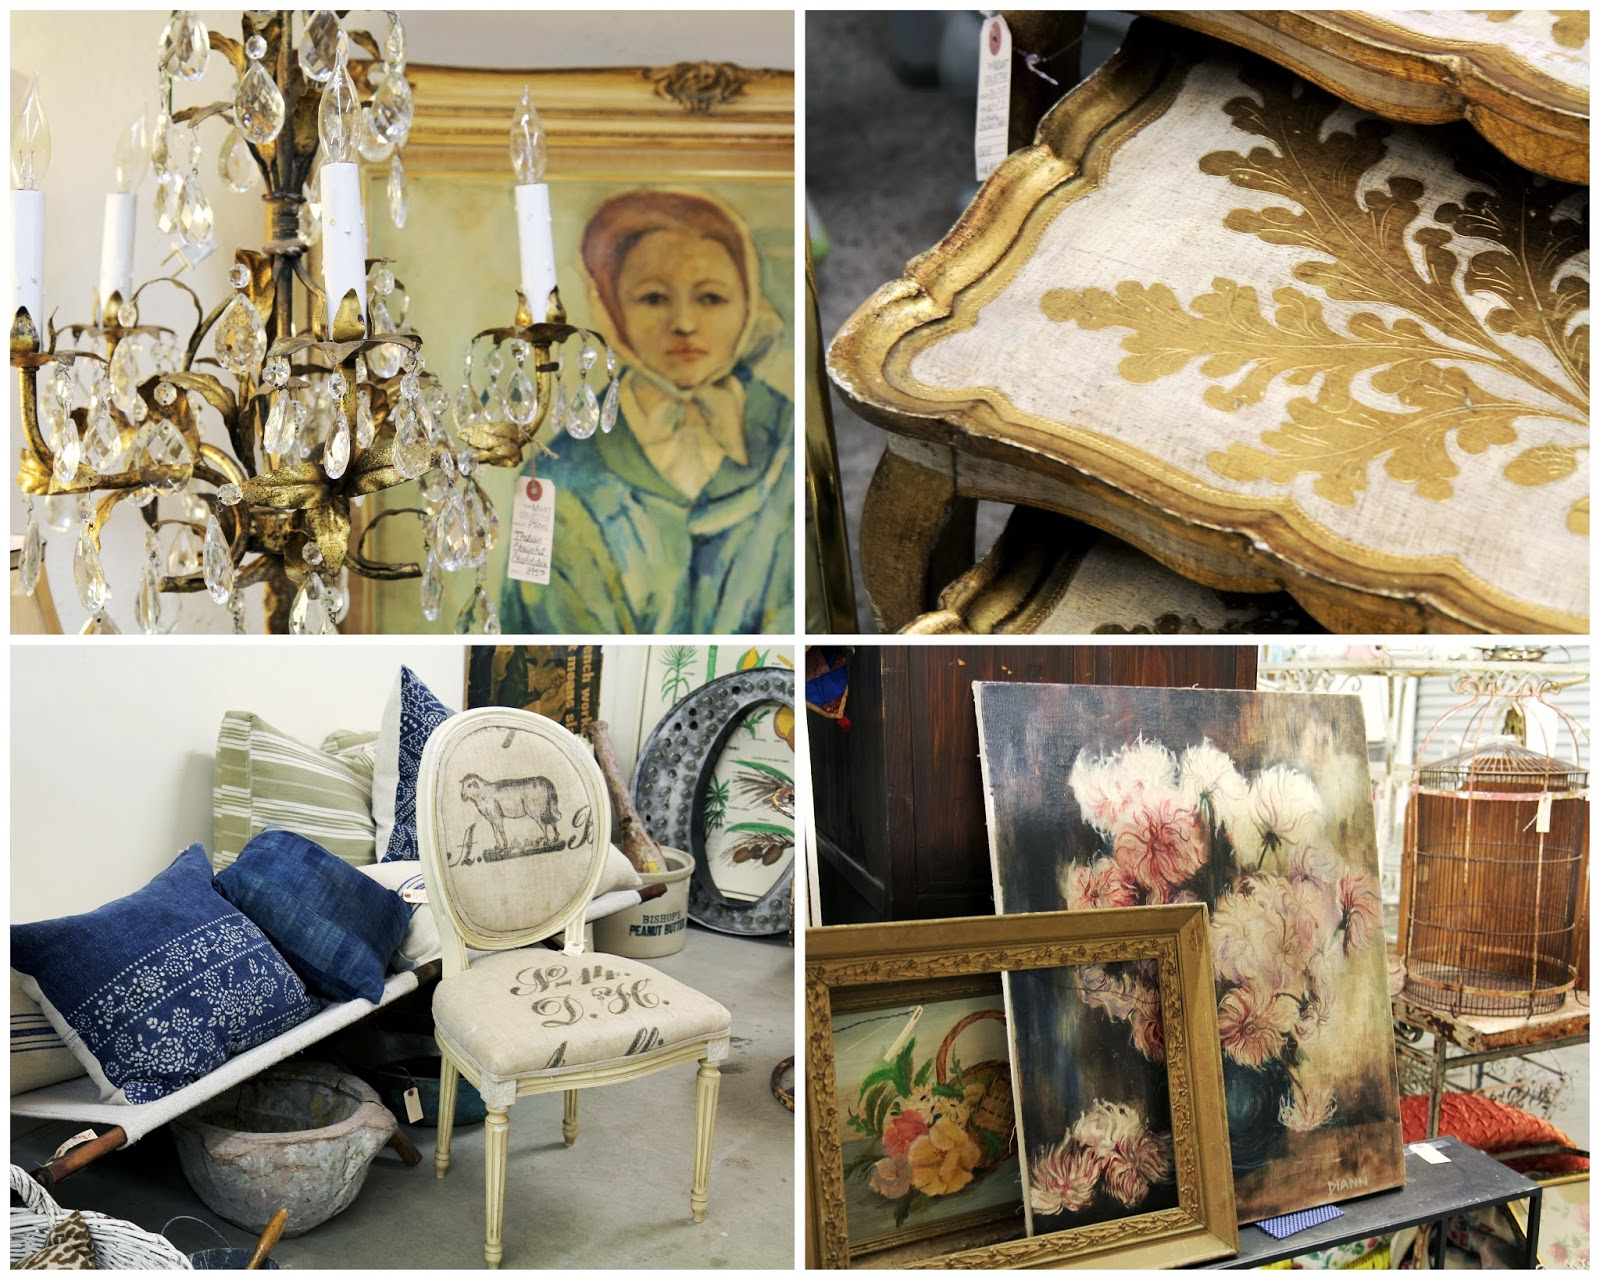 Antique chandelier, paintings, tables, and chairs